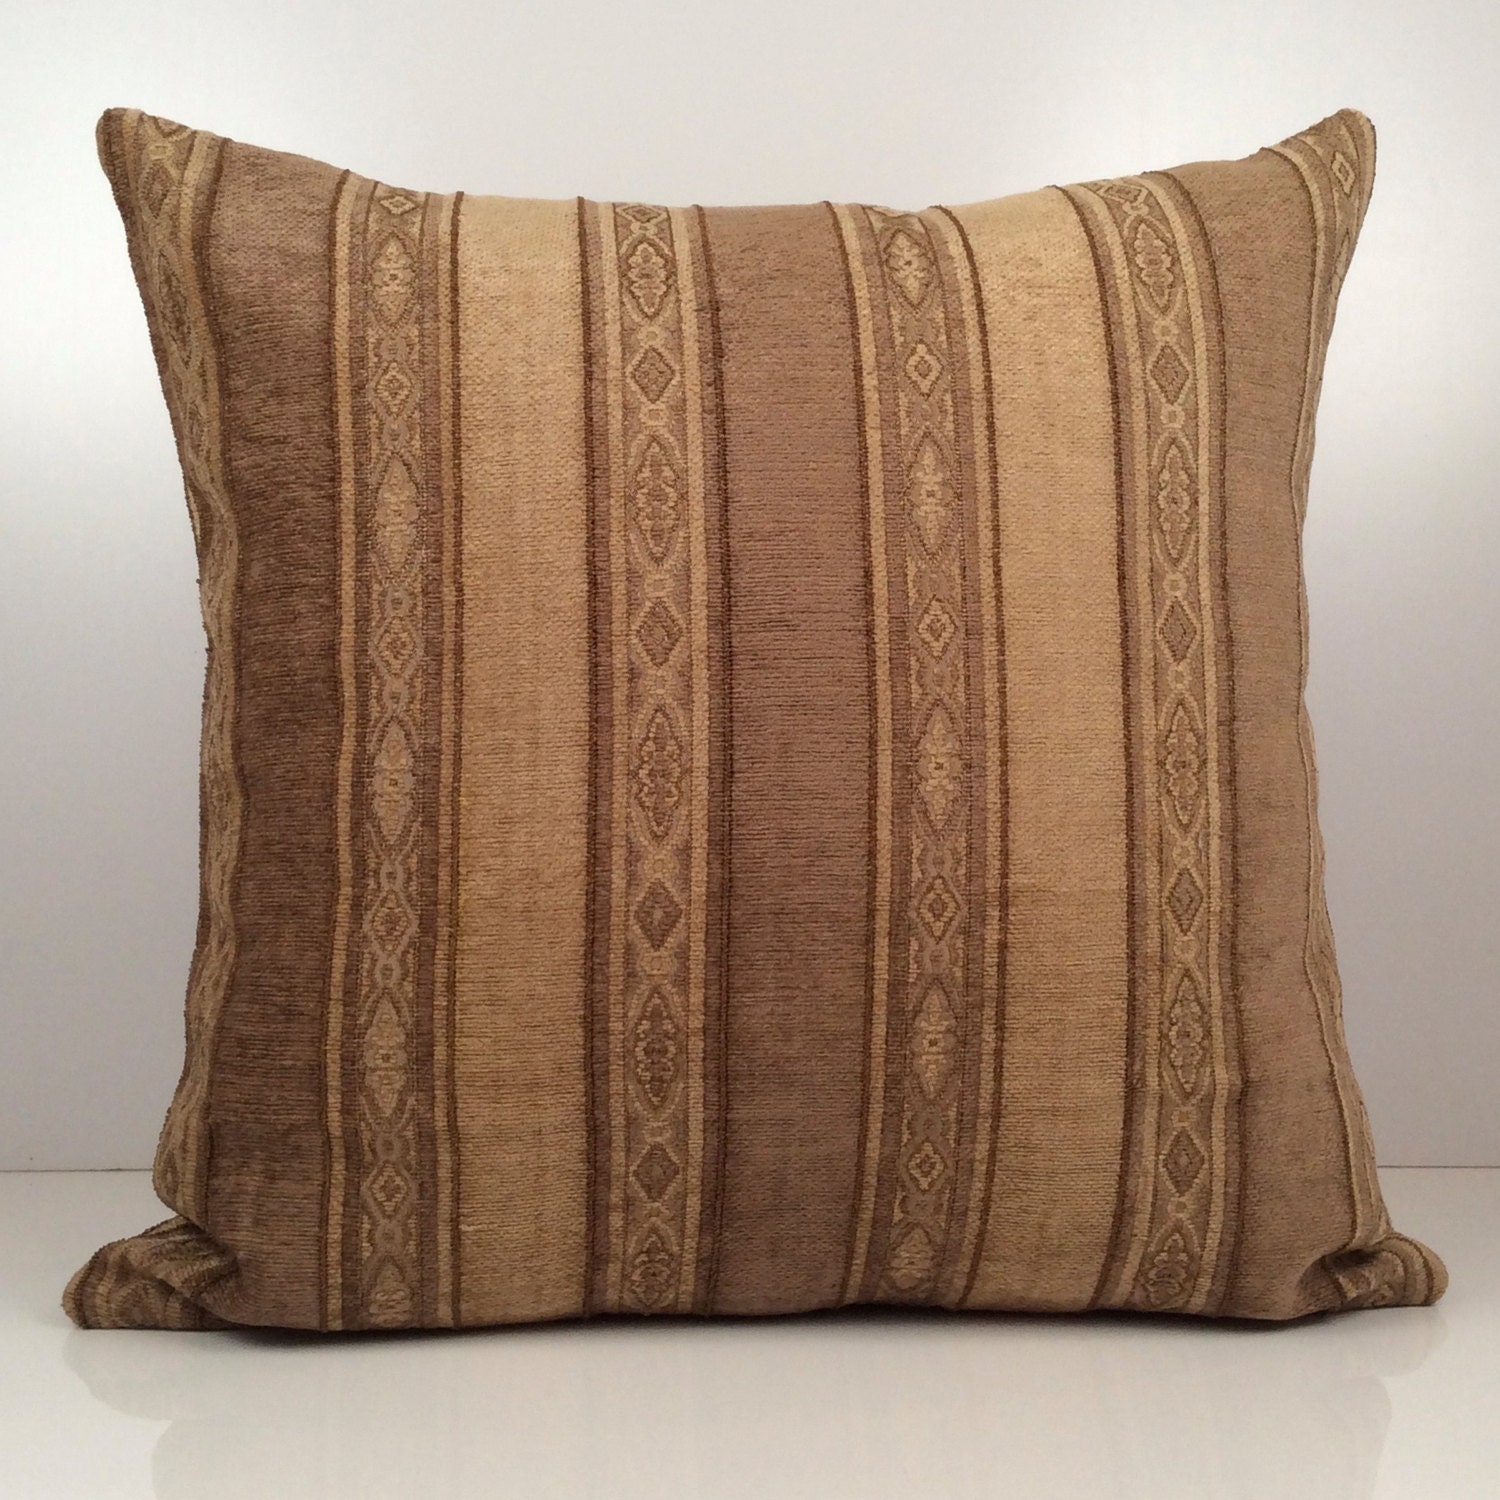 Light Brown Decorative Pillows : Dark Tan and Light Brown Pillow Striped Pillow Throw Pillow